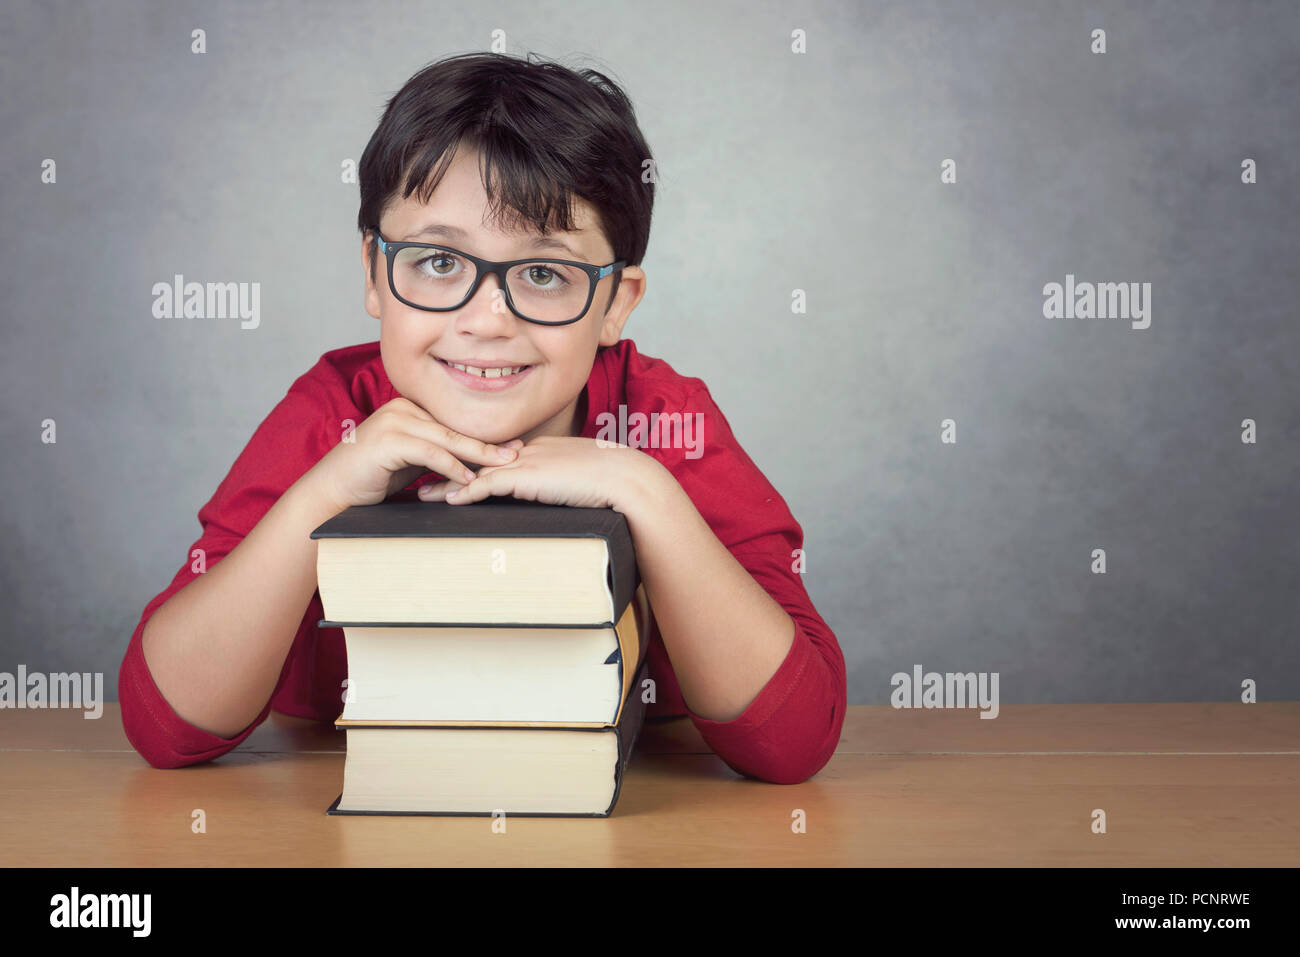 smiling little boy leaning on books on a table on black background - Stock Image